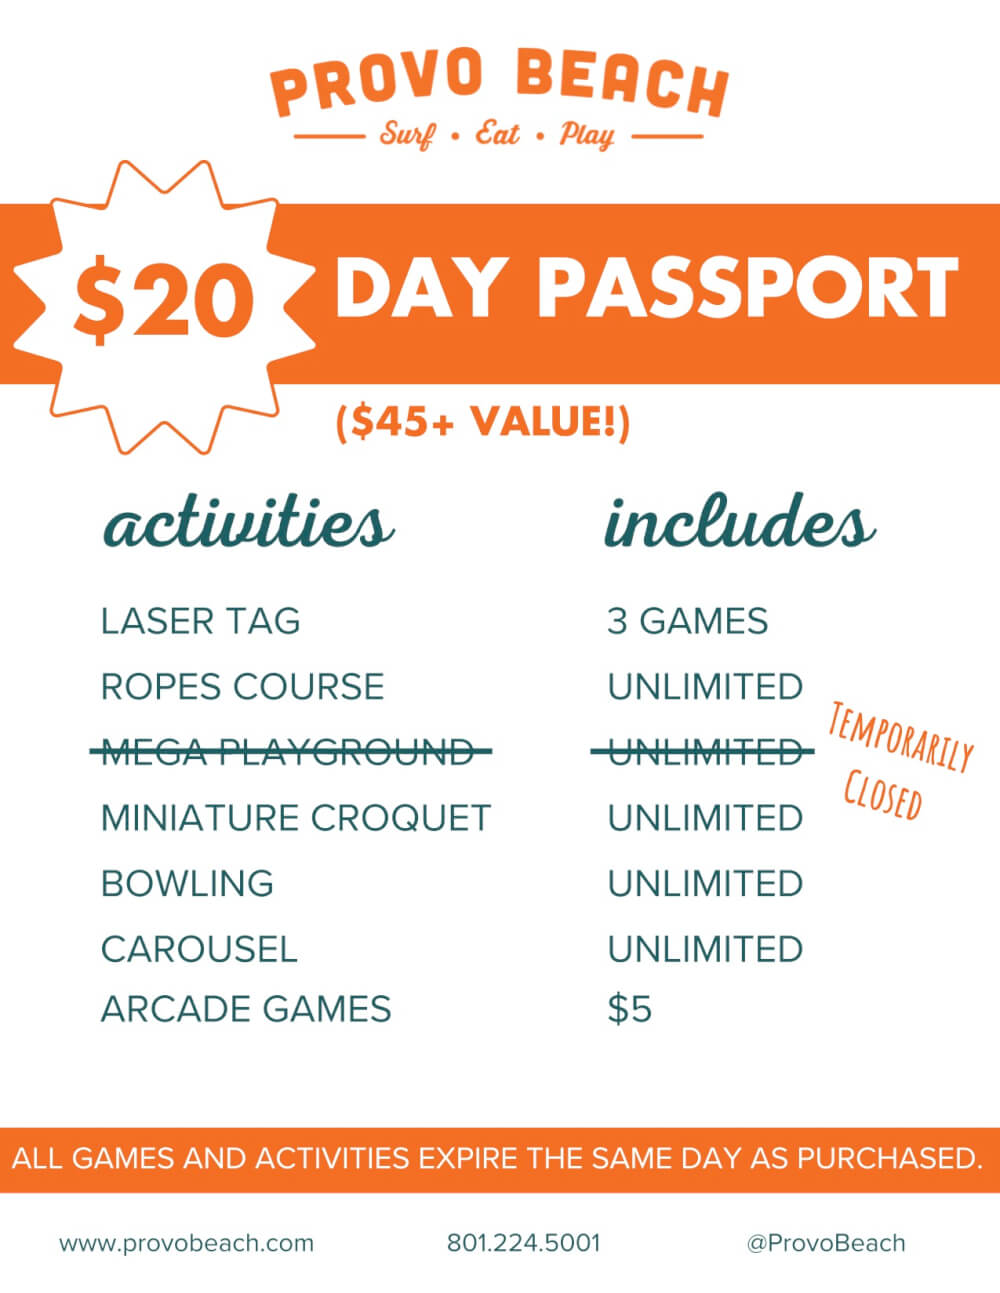 $20 day passport is a $41 plus value. Laser tag includes 2 games, ropes course unlimited access, mega playground unlimited access, miniature croquet unlimited access, blowing unlimited access, carousel unlimited access, carnival games $5. All games and activities expire the same day as purchased. Offer is -for a unlimited time. See crew members for details. You can contact us at 801-224-5001.